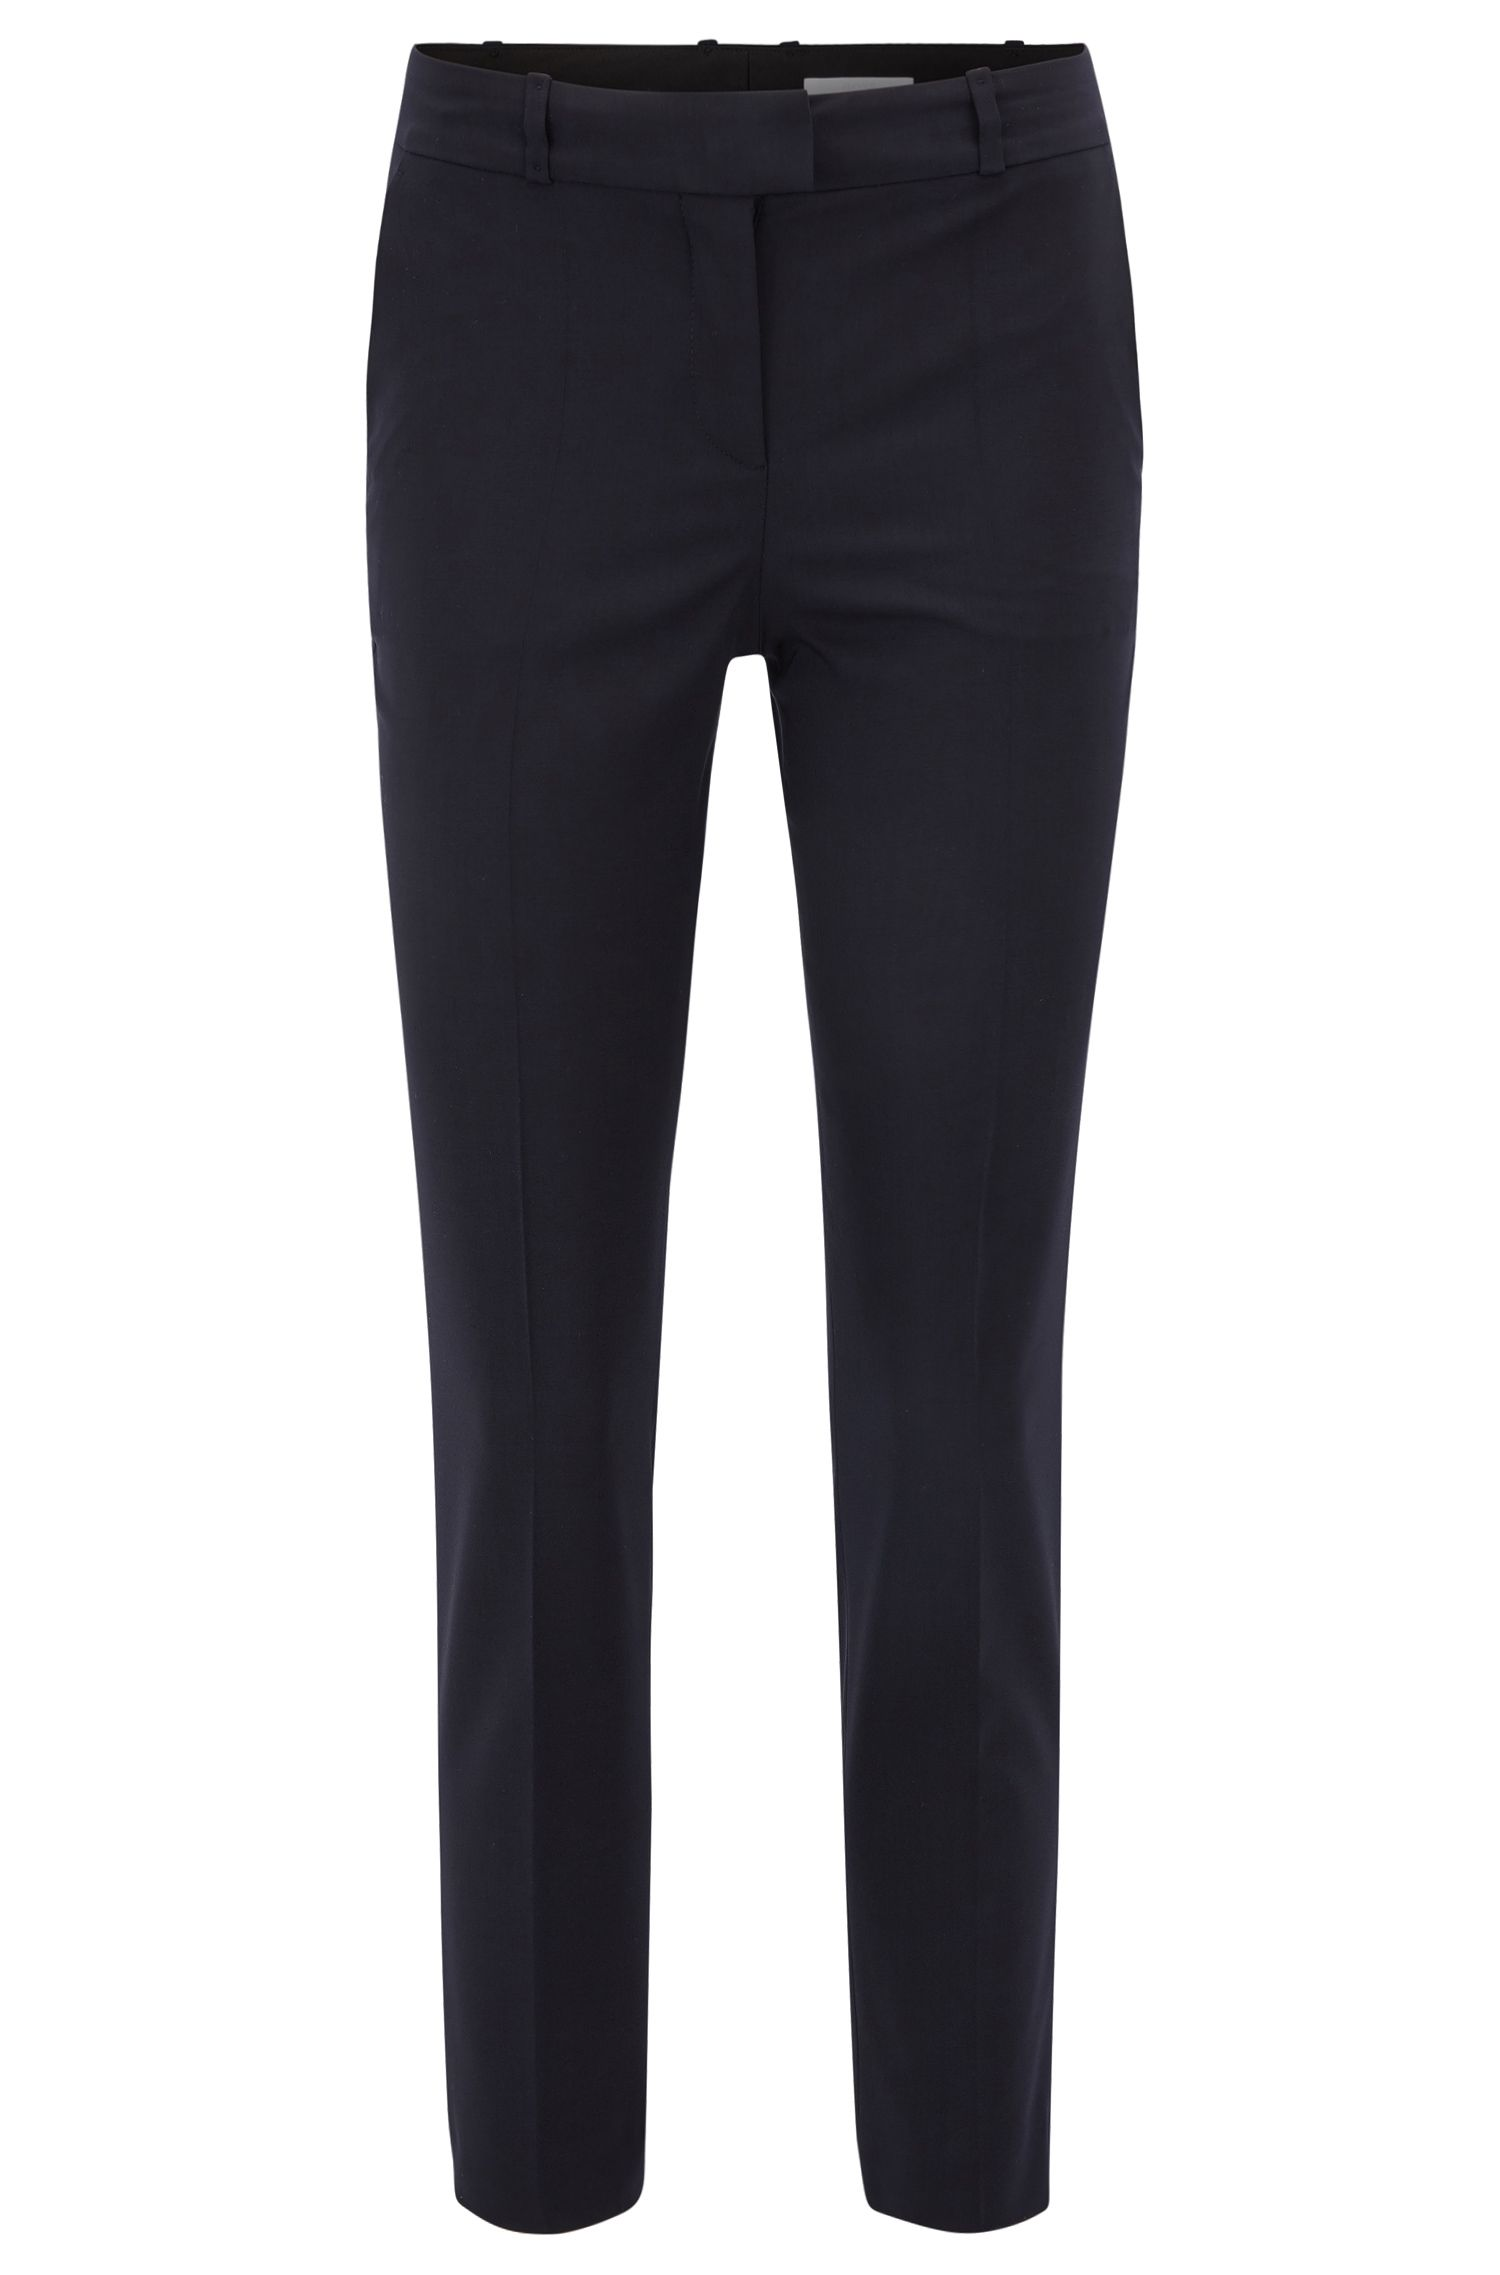 Pantaloni relaxed fit in lana vergine elasticizzata